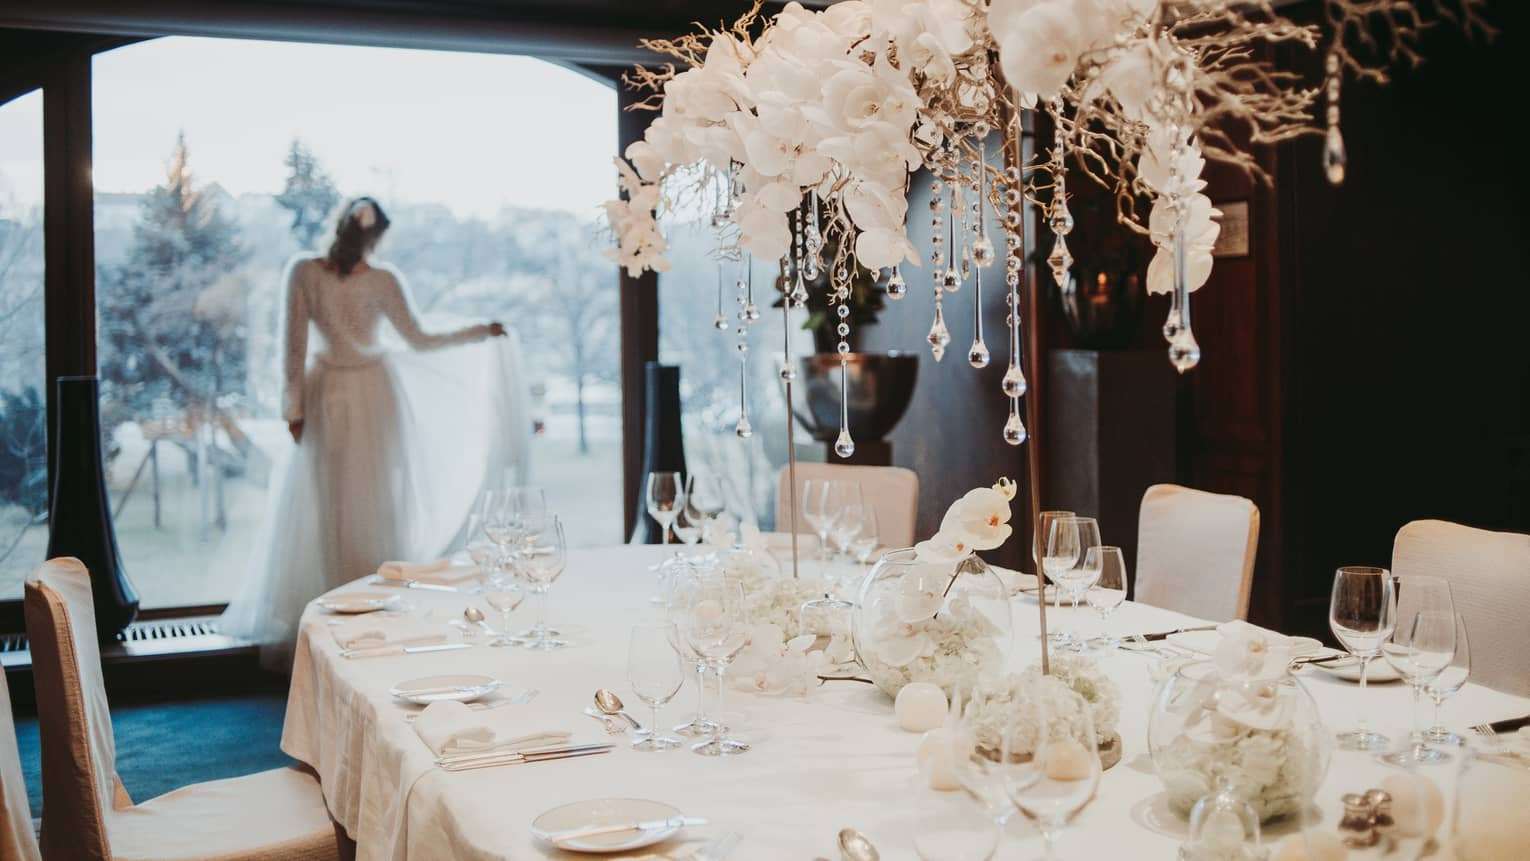 Bride holds train staring out window behind table with white orchids and glass icicles